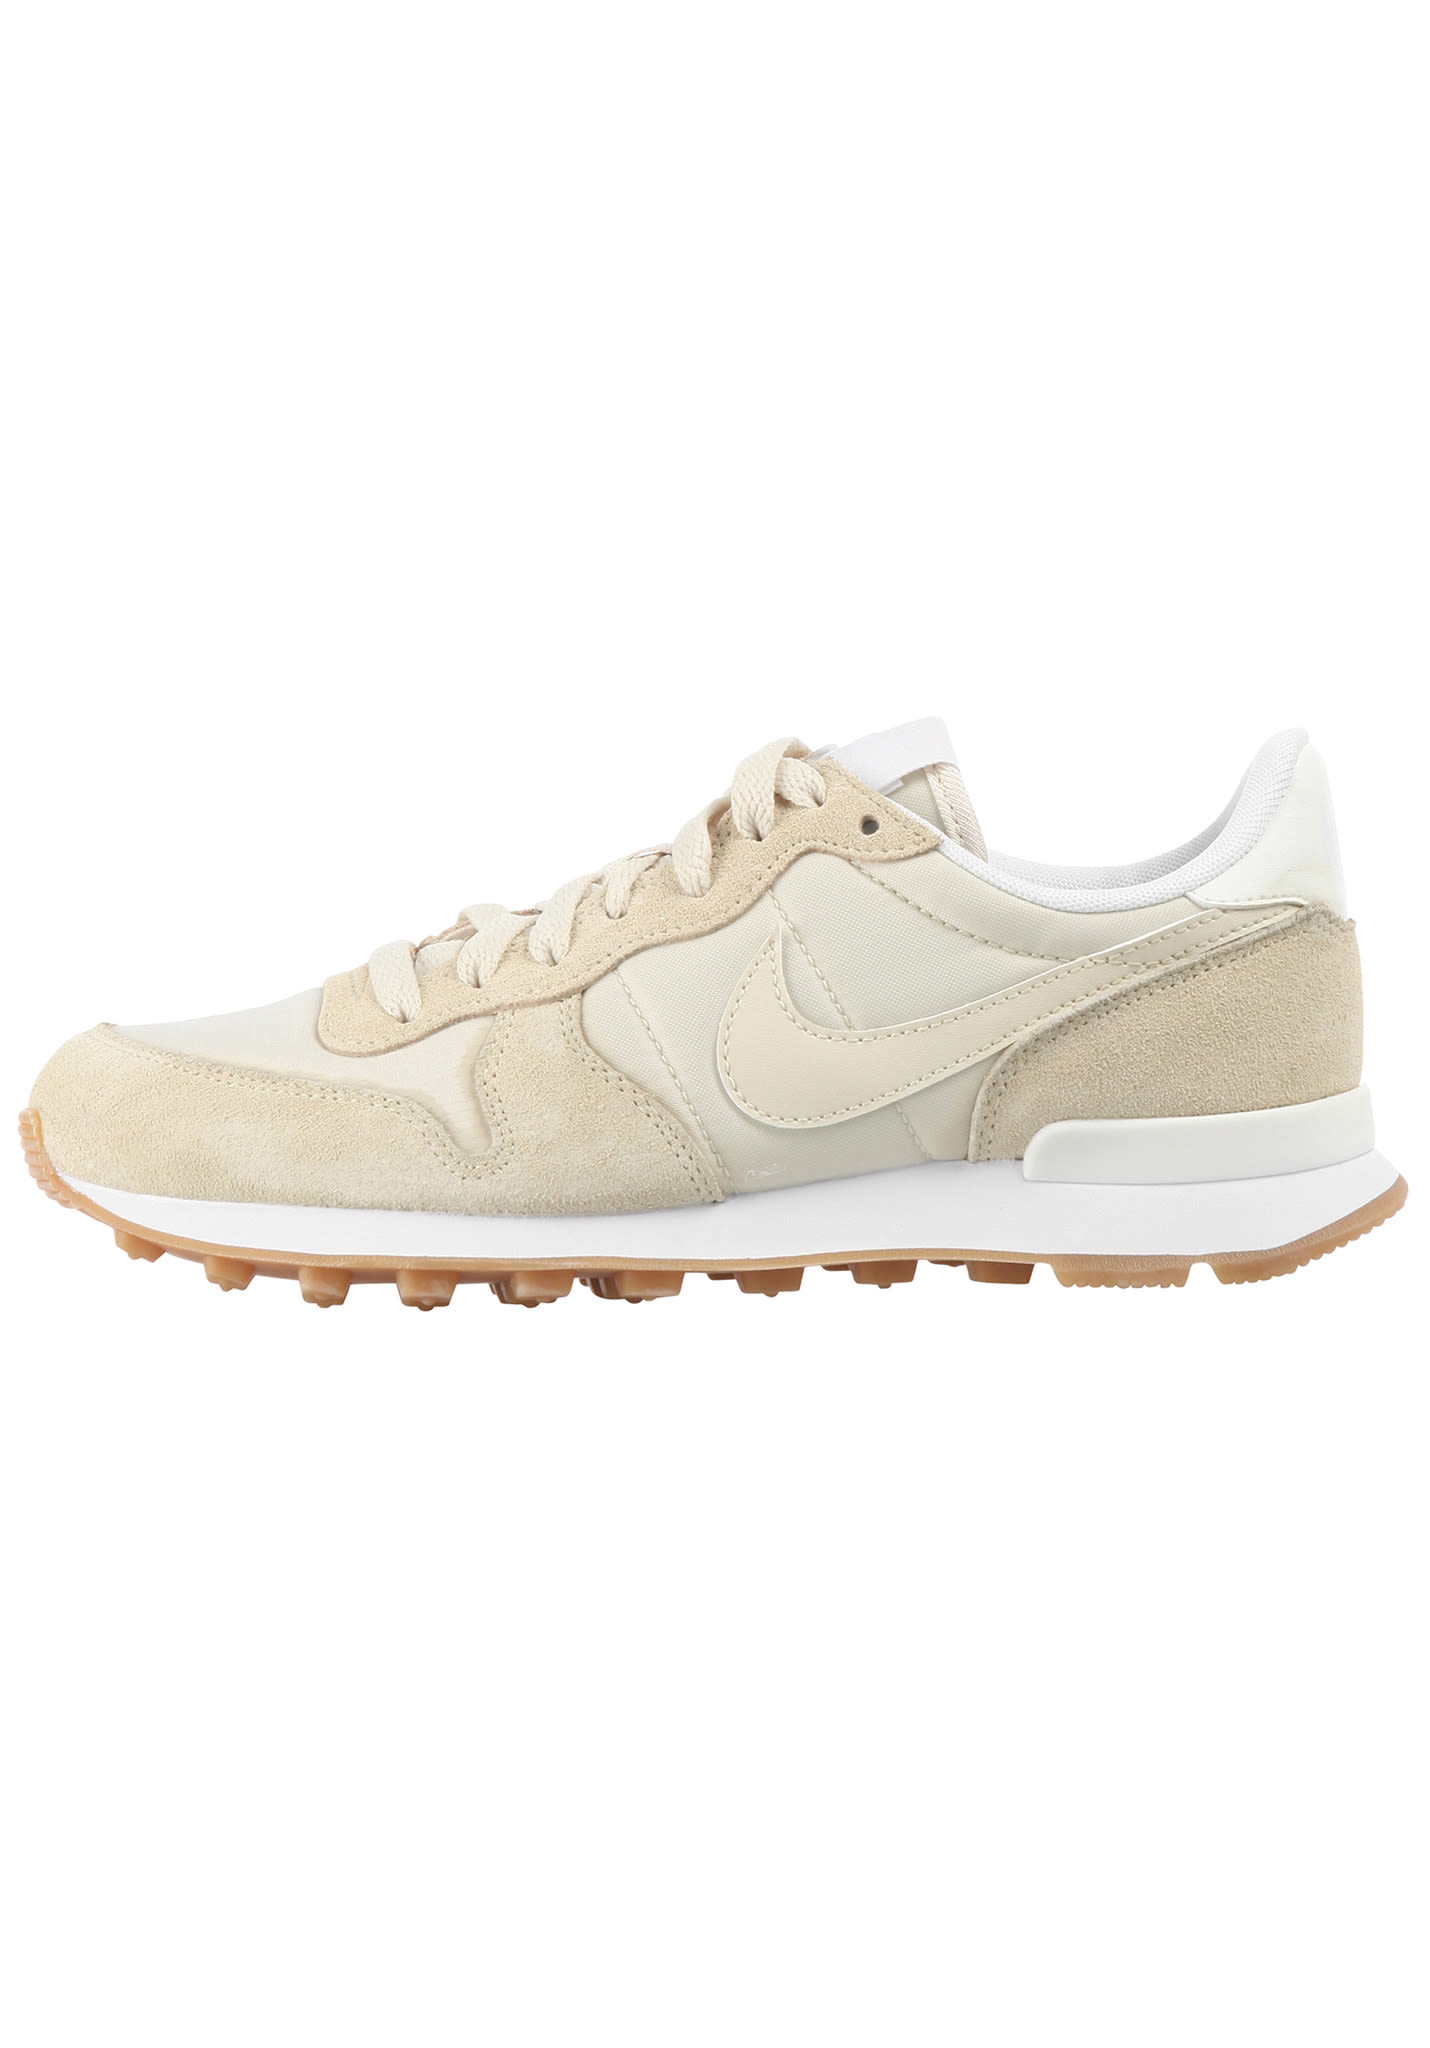 nike internationalist femme beige et or